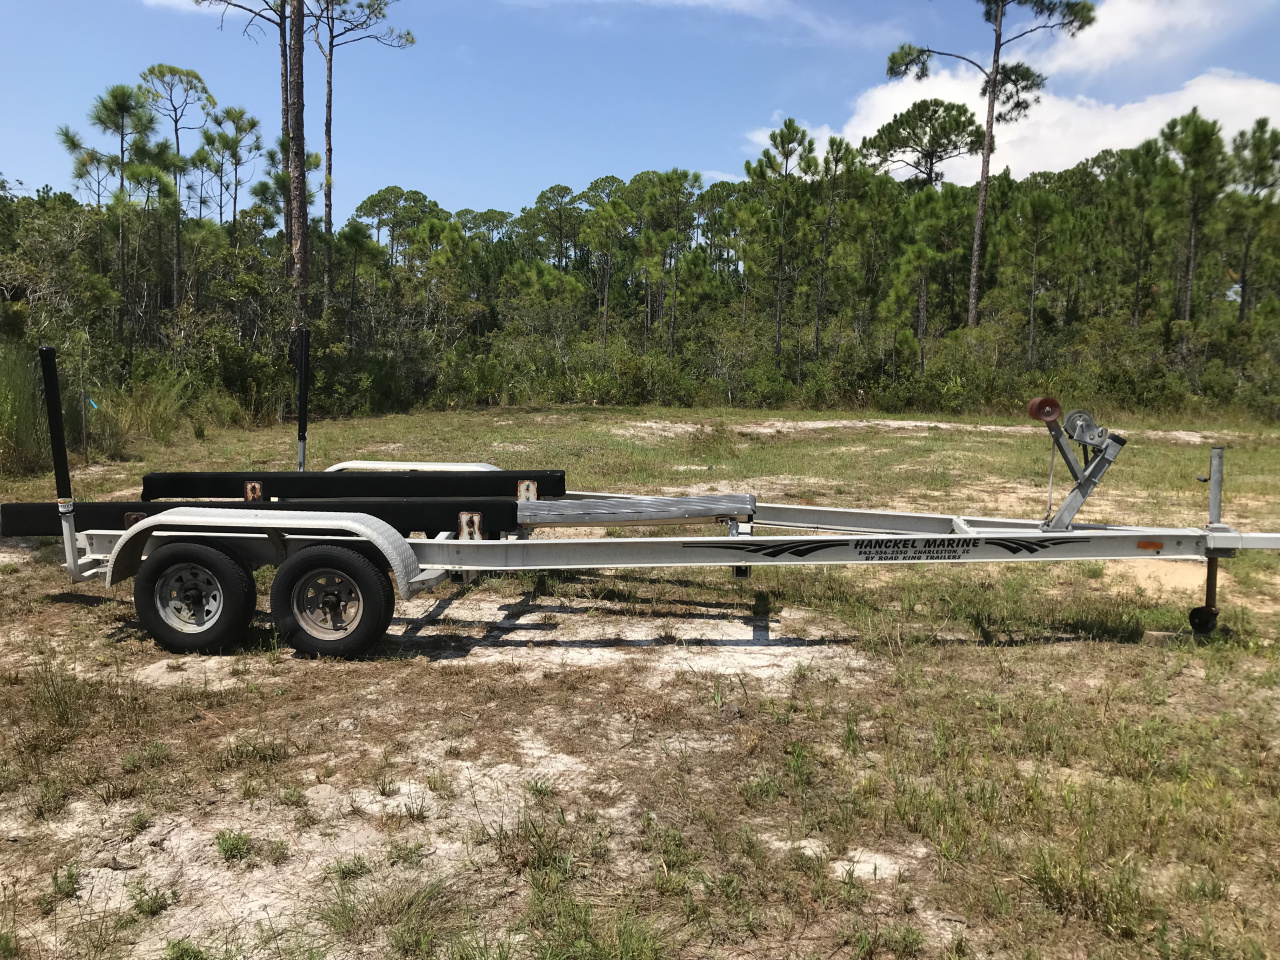 Used boat trailer for sale - Pensacola Fishing Forum